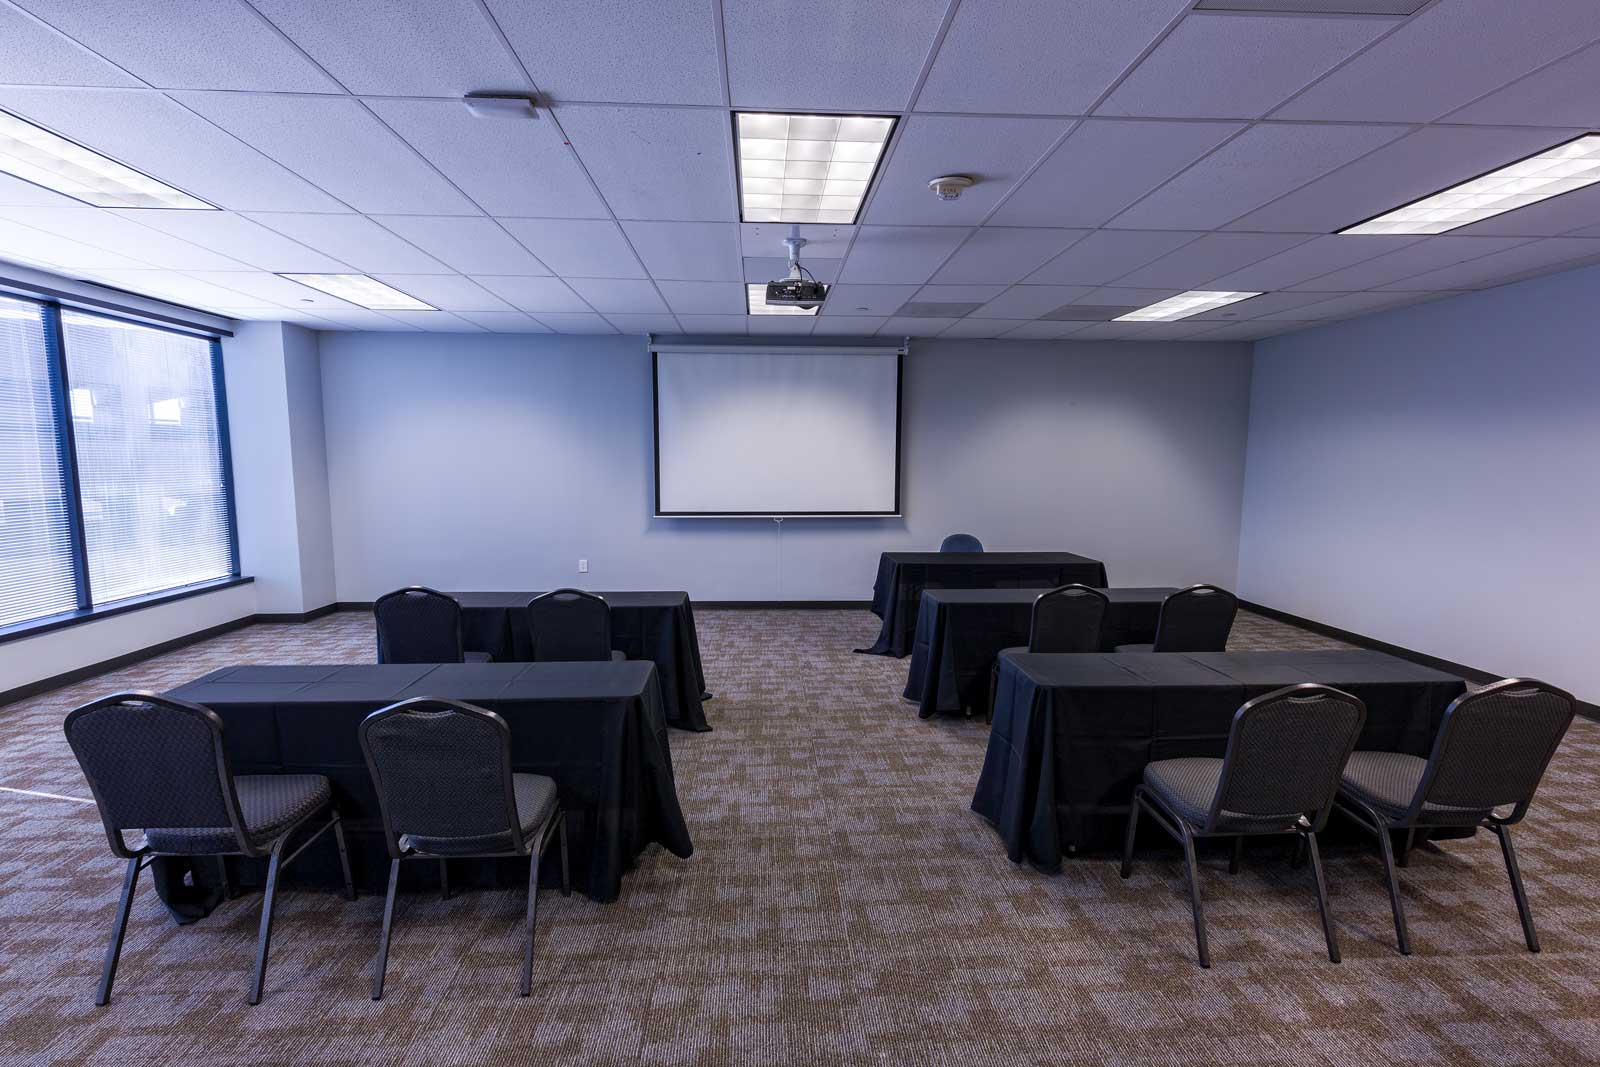 Norris Centers Dallas, Cypress Room, Set Classroom Style